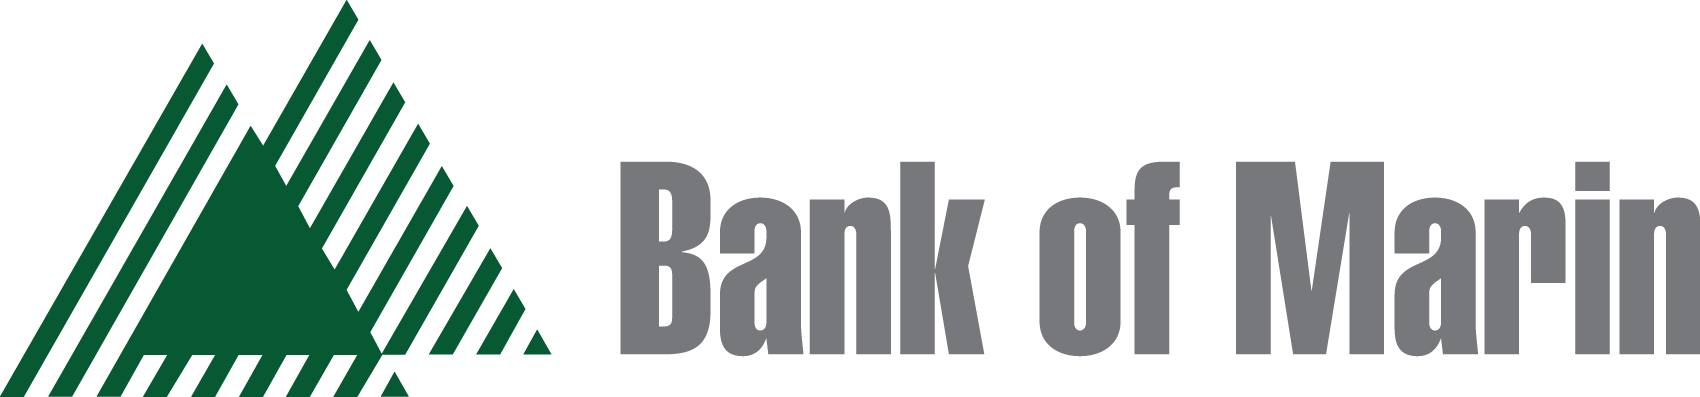 Bank of Marin logo